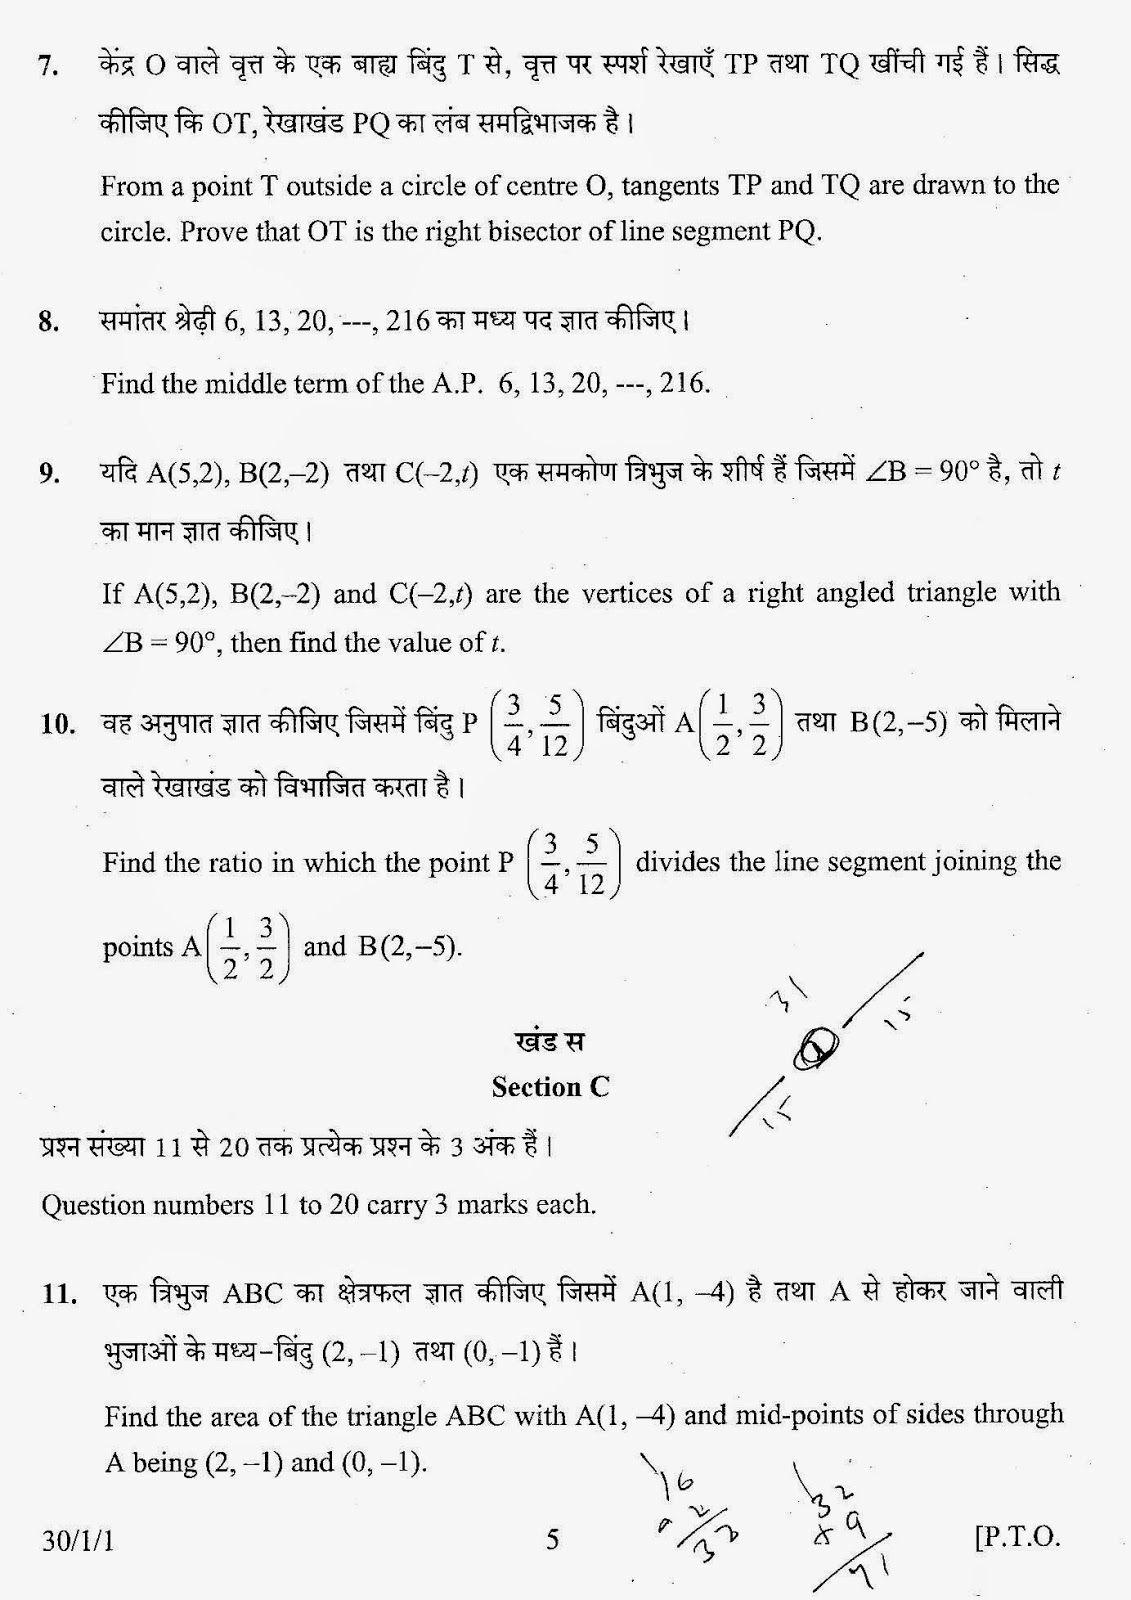 Class X Mathematics Cbse Board Paper Code No 30 1 1 Series Rhl 1 Set 1 15